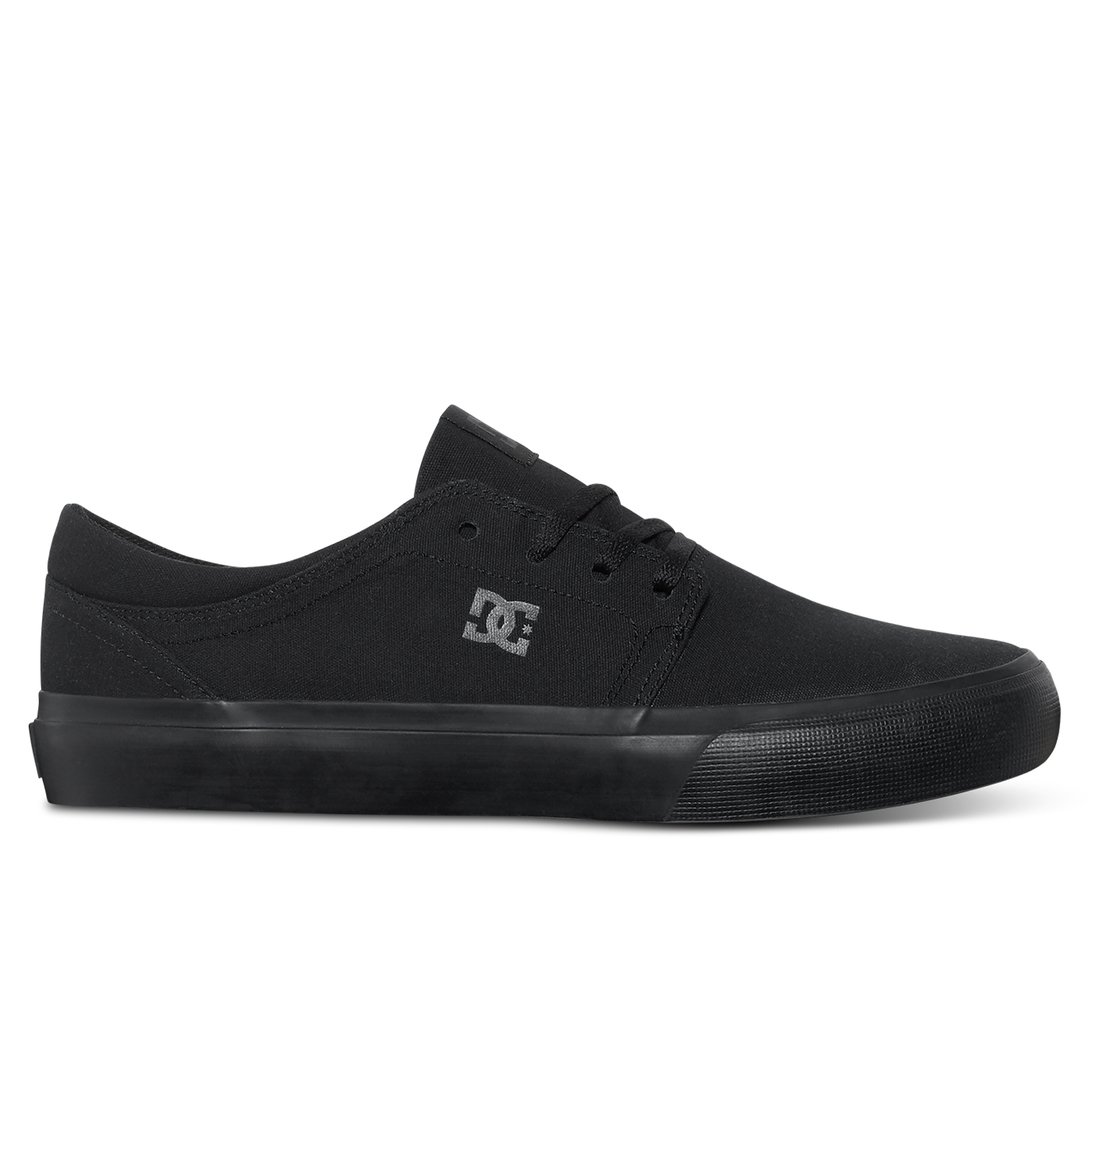 DC Shoes - Zapatillas de Skateboarding Para Hombre, Color Blanco, Talla 42,5